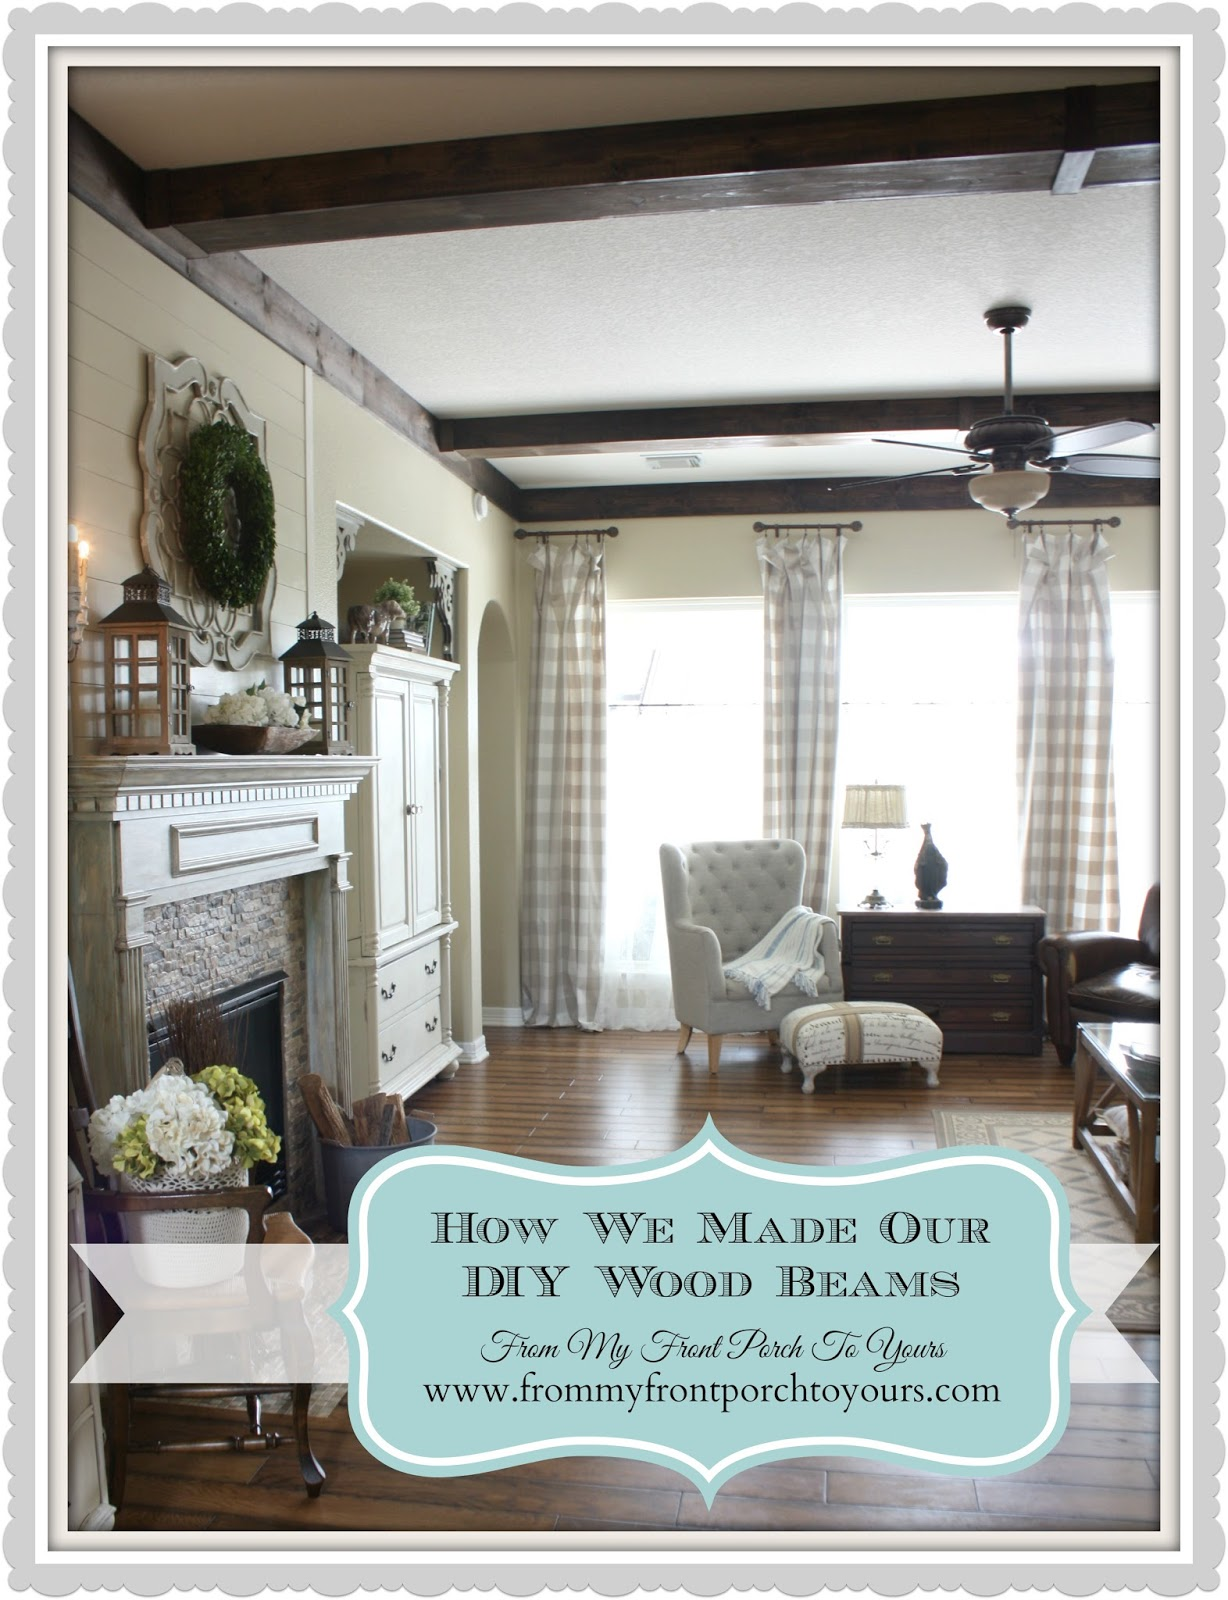 Wood beam tutorial recap at From My Front Porch To Yours